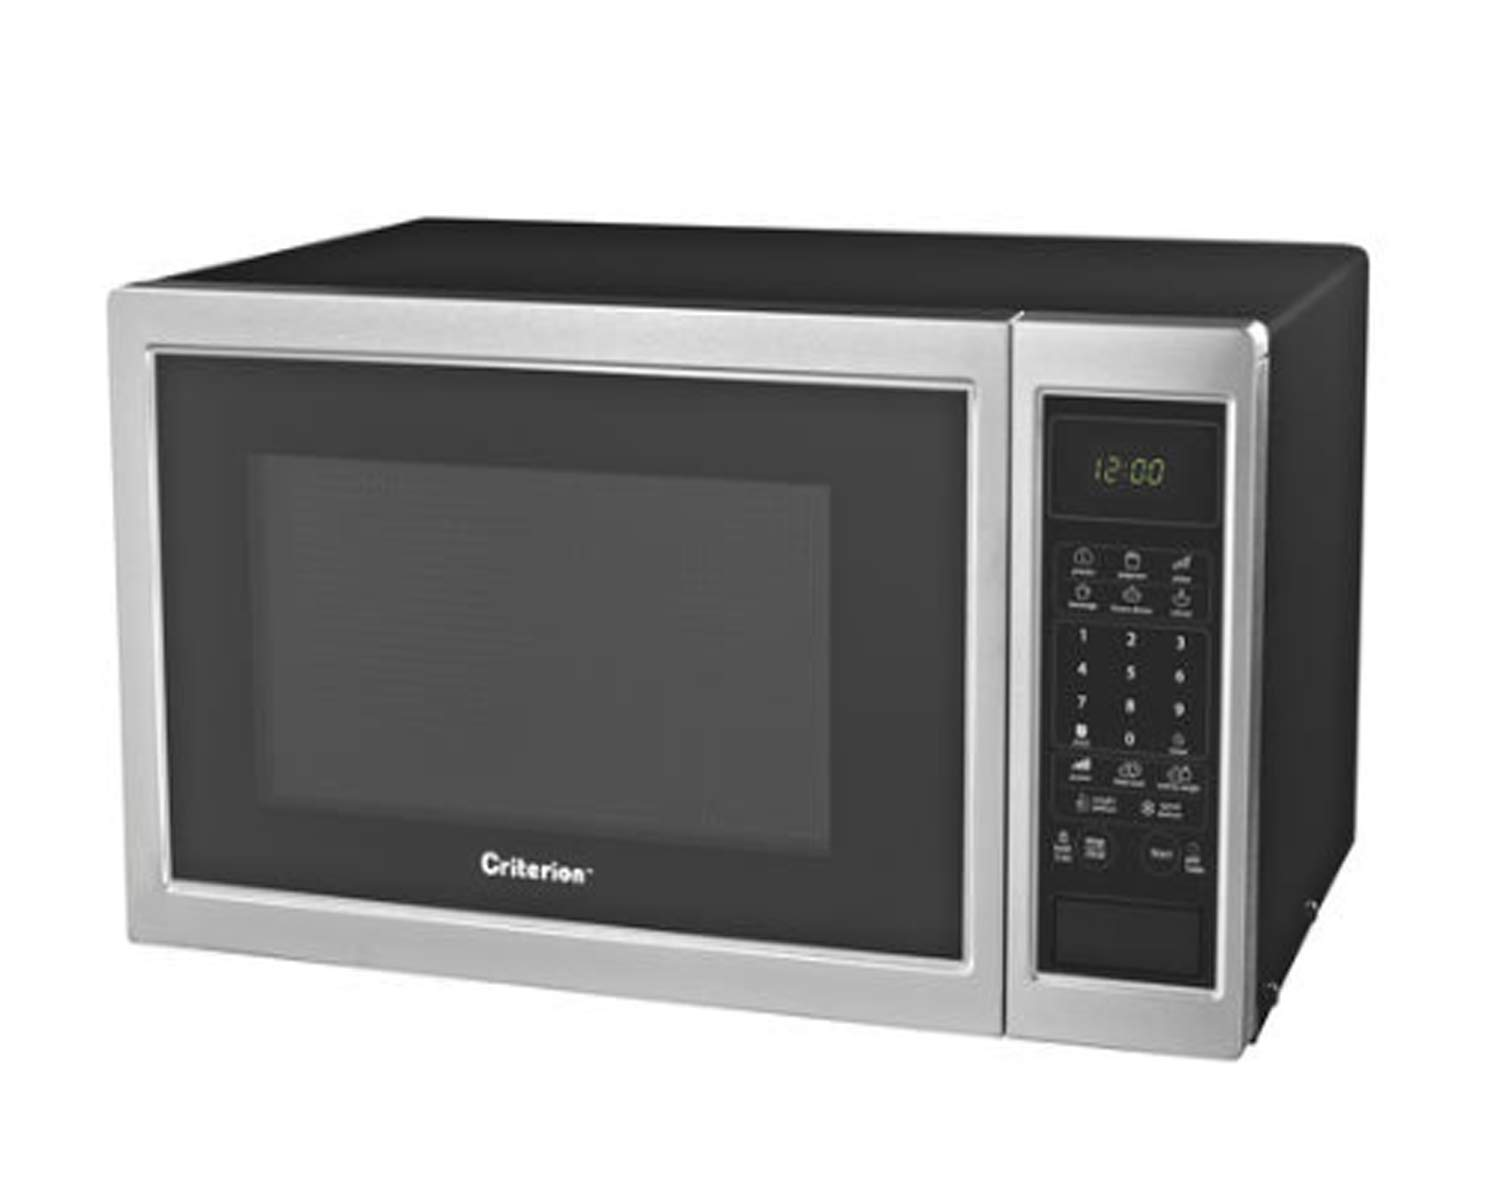 Countertop Microwave with Electronic Touchpad Control and 6 Preprogrammed Popular Functions | Convenient, 900 Watts | 0.9 cu ft, Stainless Steel